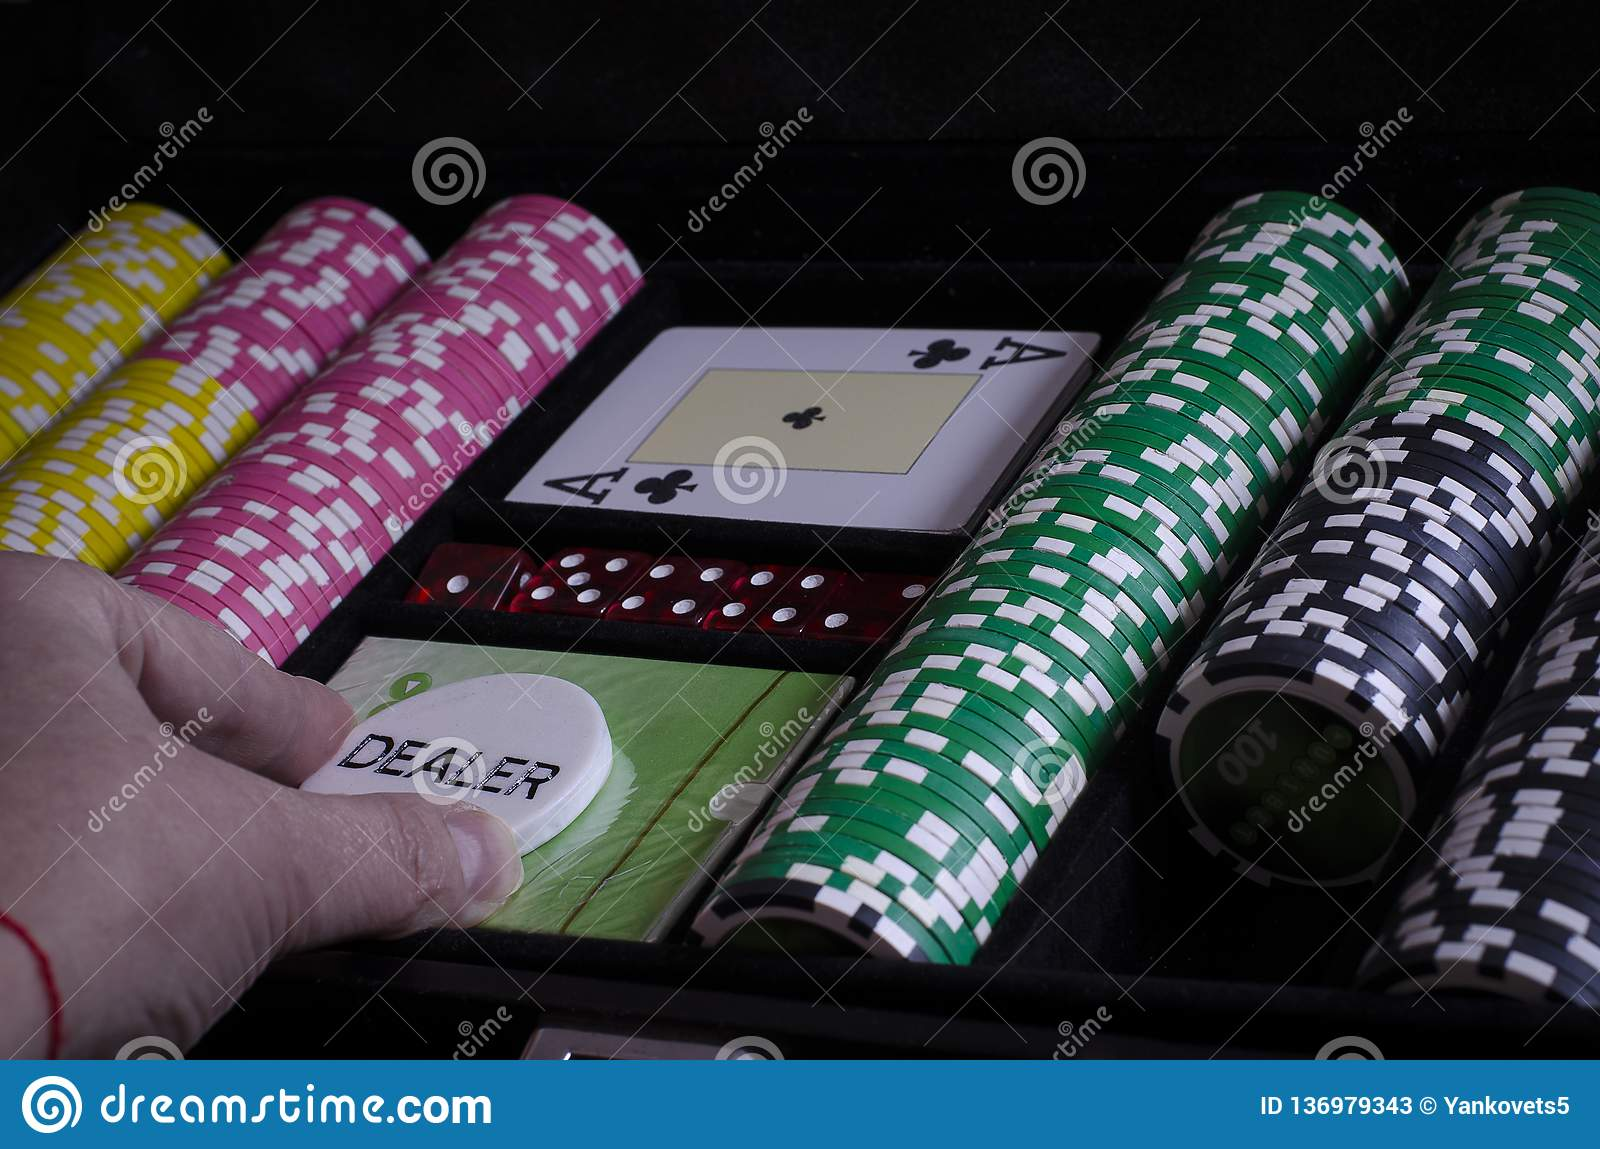 Dec 04, · 3.Handling chips and/or cards